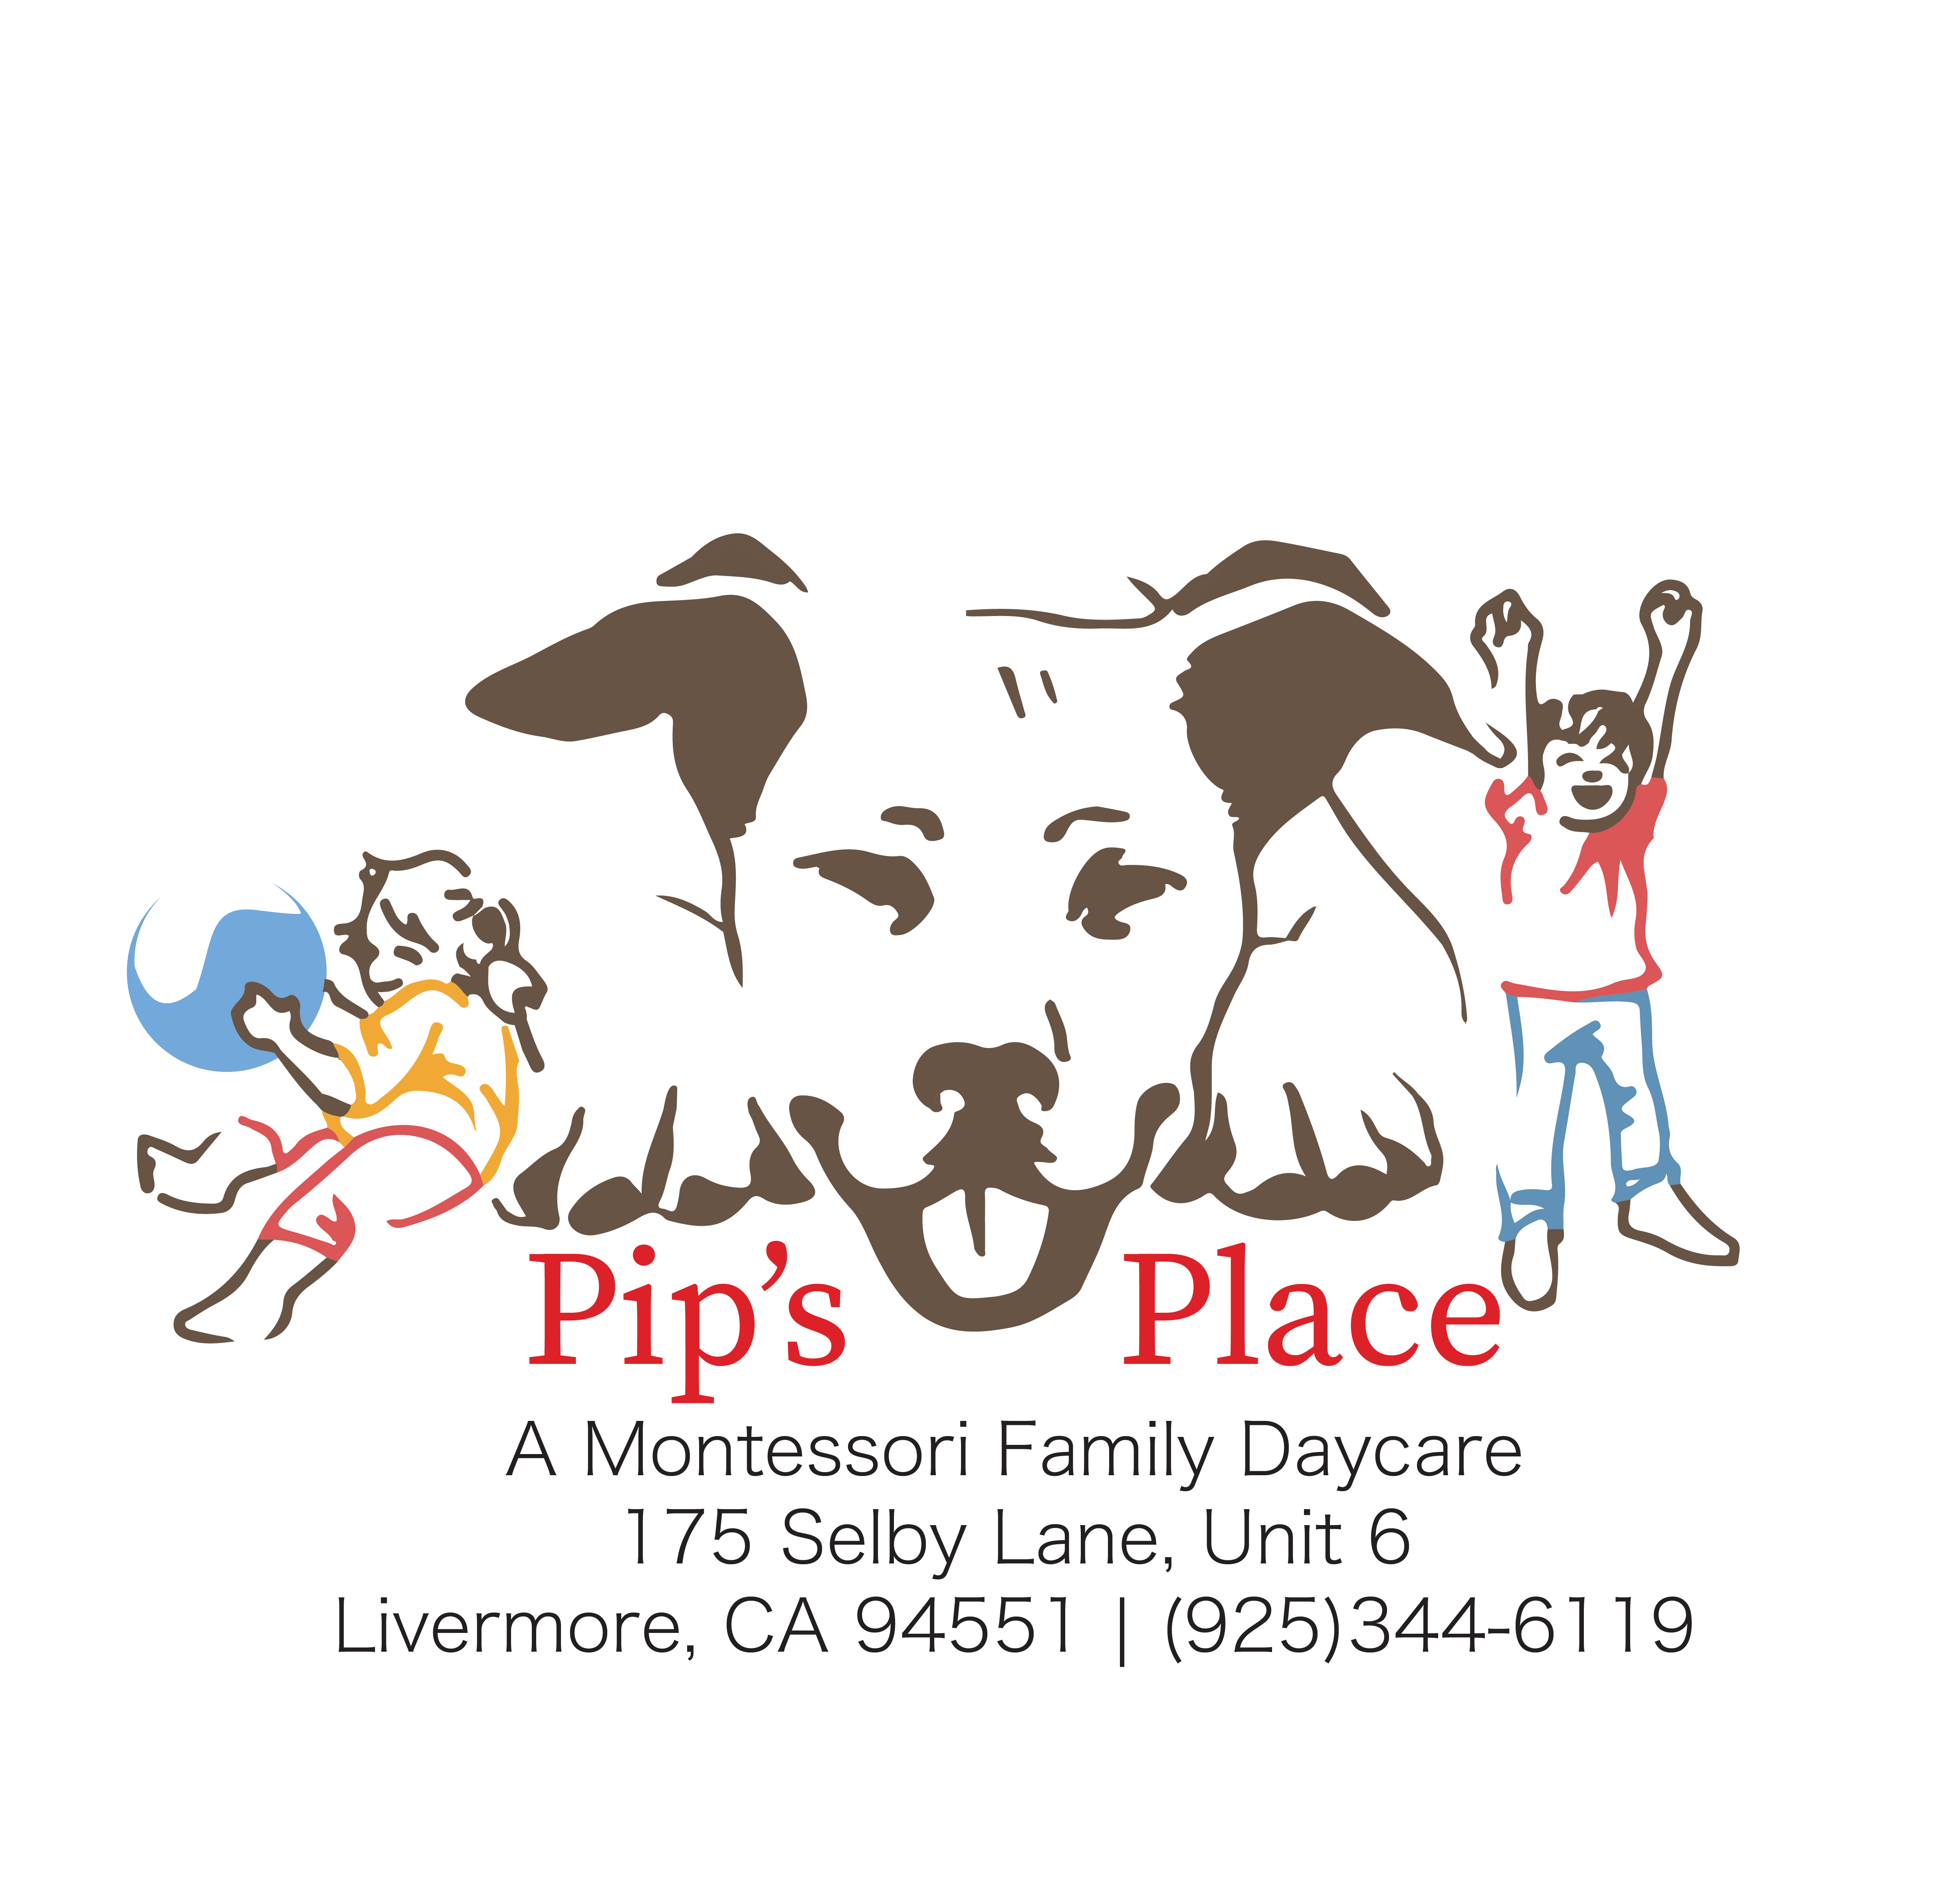 Pip's Place